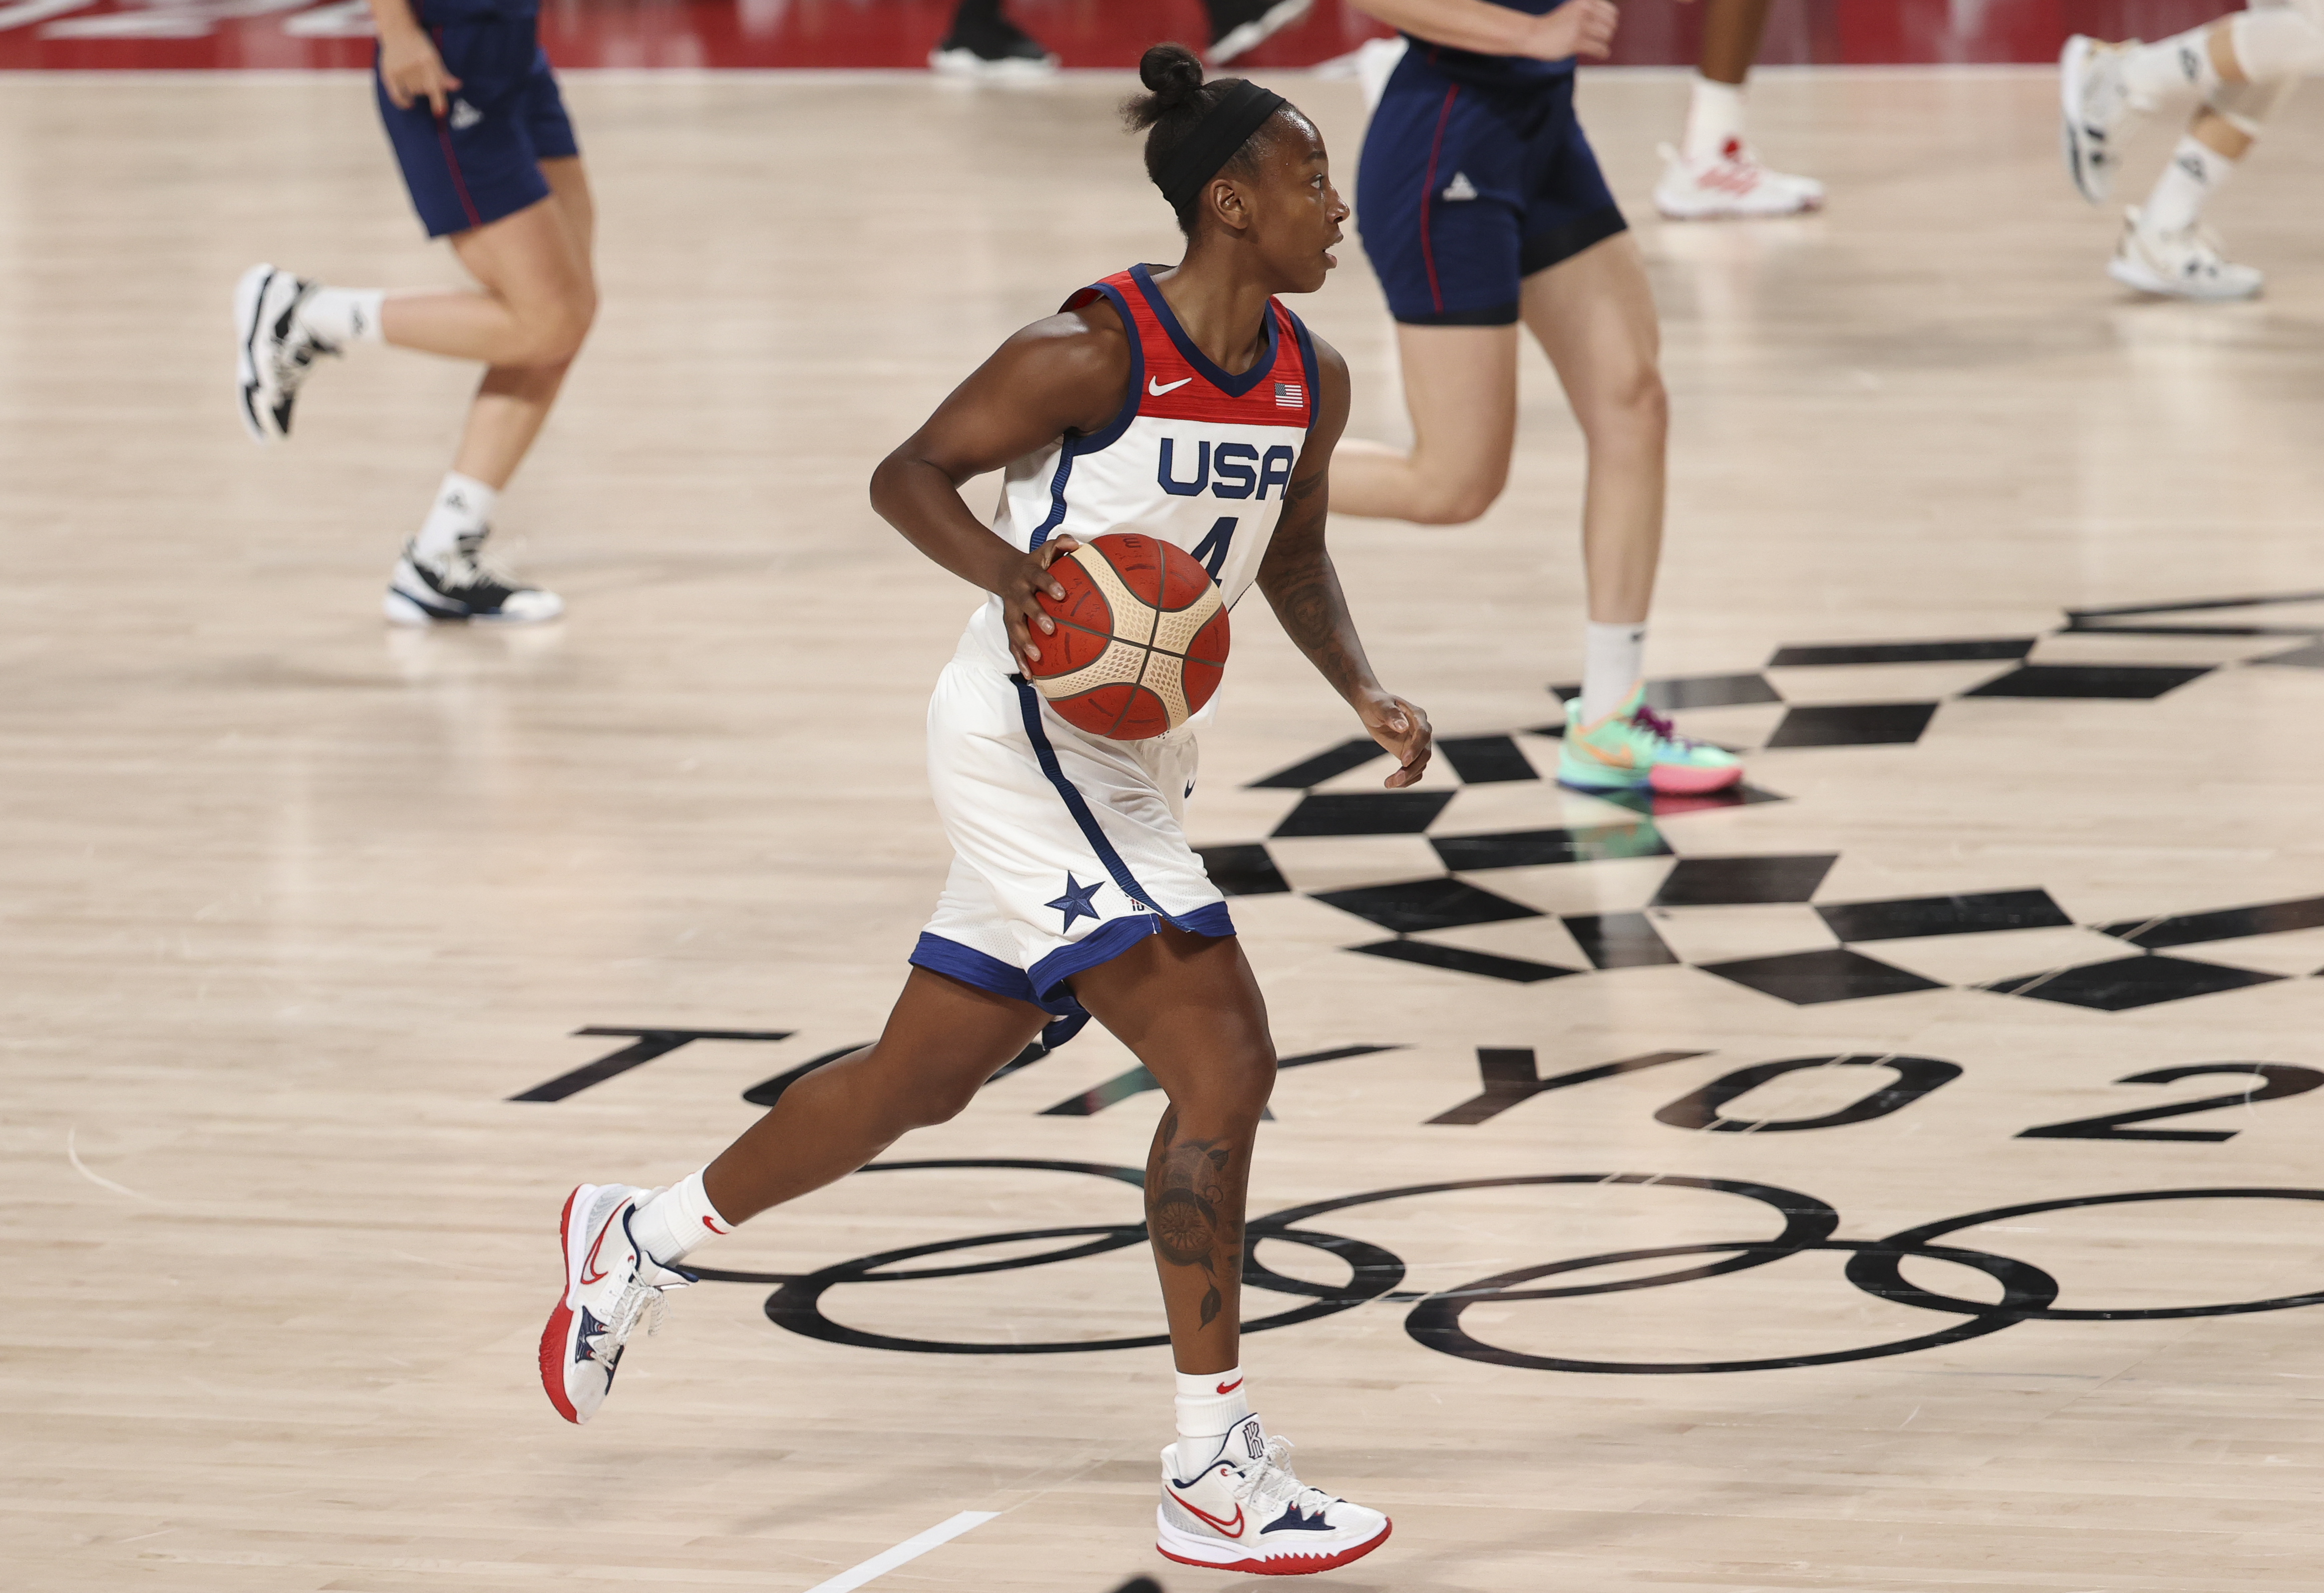 Jewell Loyd of USA during the Women's Semifinal Basketball game between United States and Serbia on day fourteen of the Tokyo 2020 Olympic Games at Saitama Super Arena on August 6, 2021 in Saitama, Japan.